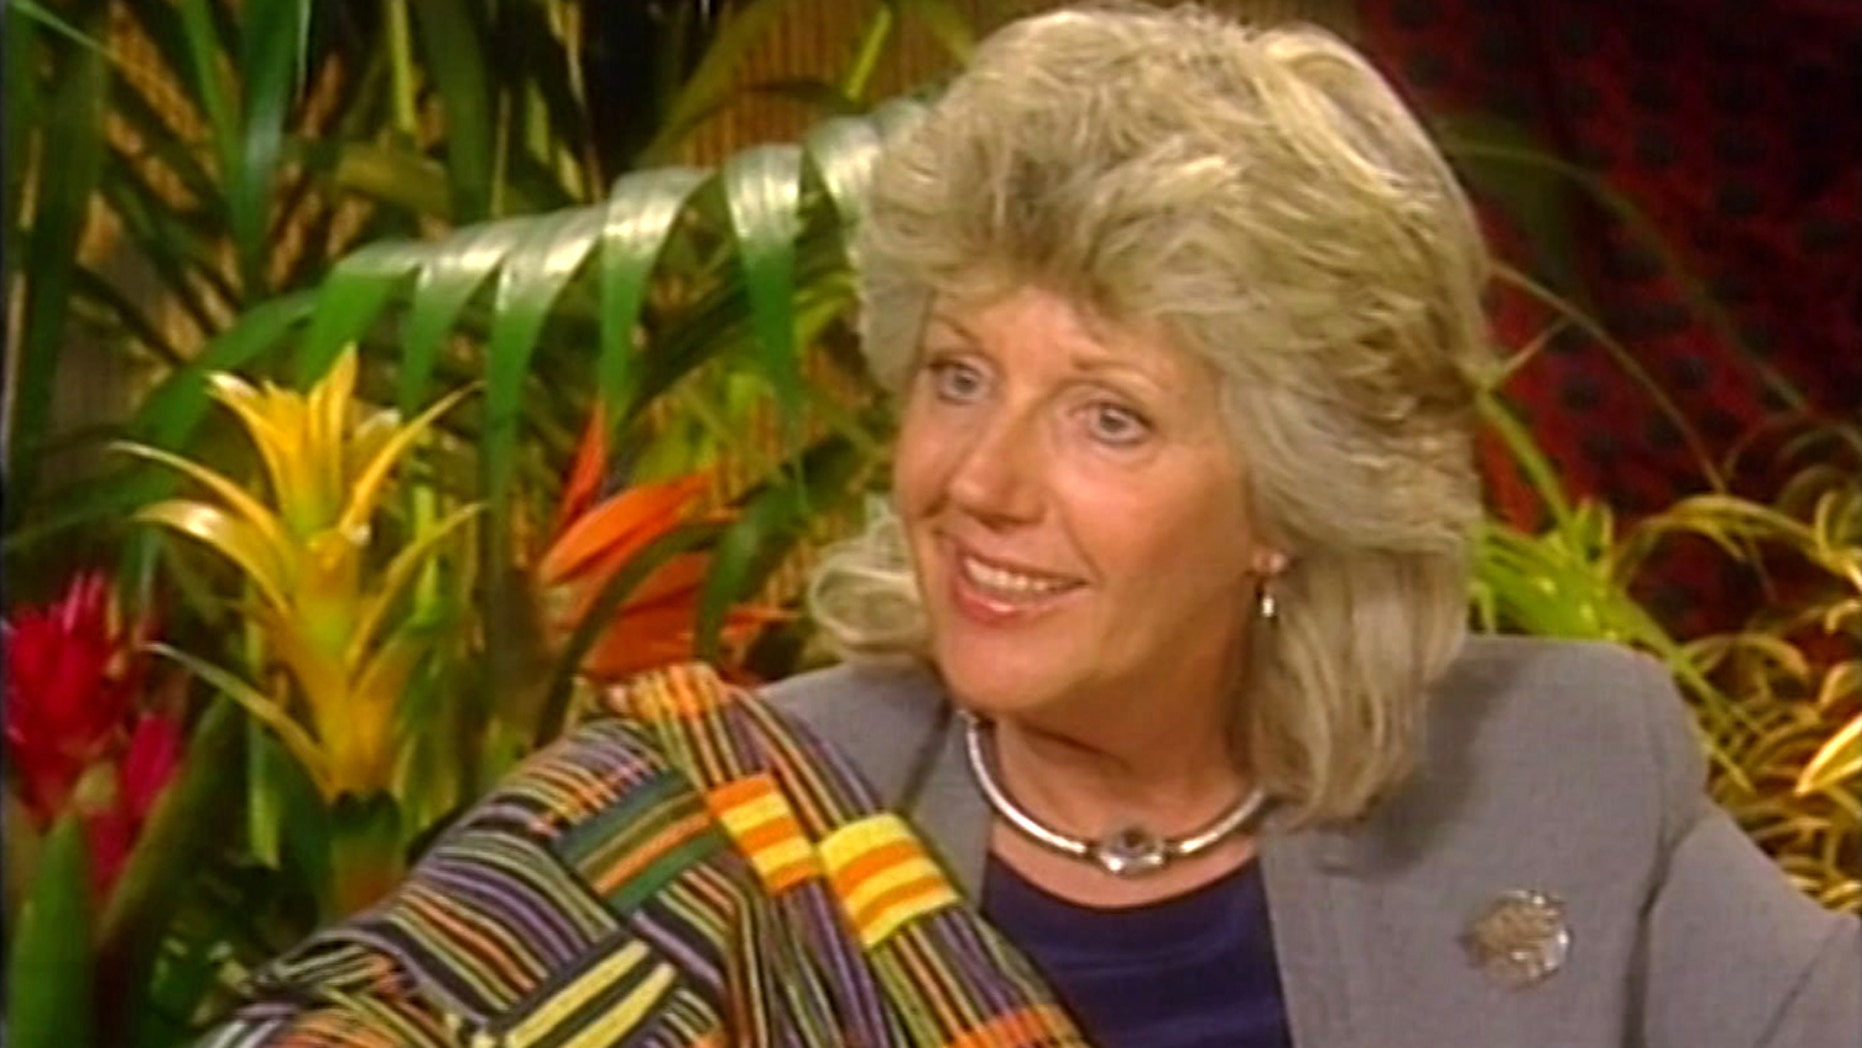 In this image from a video footage taken on May 3, 2000 in New York, the Italian-born author and conservationist Kuki Gallmann speaks during an interview.